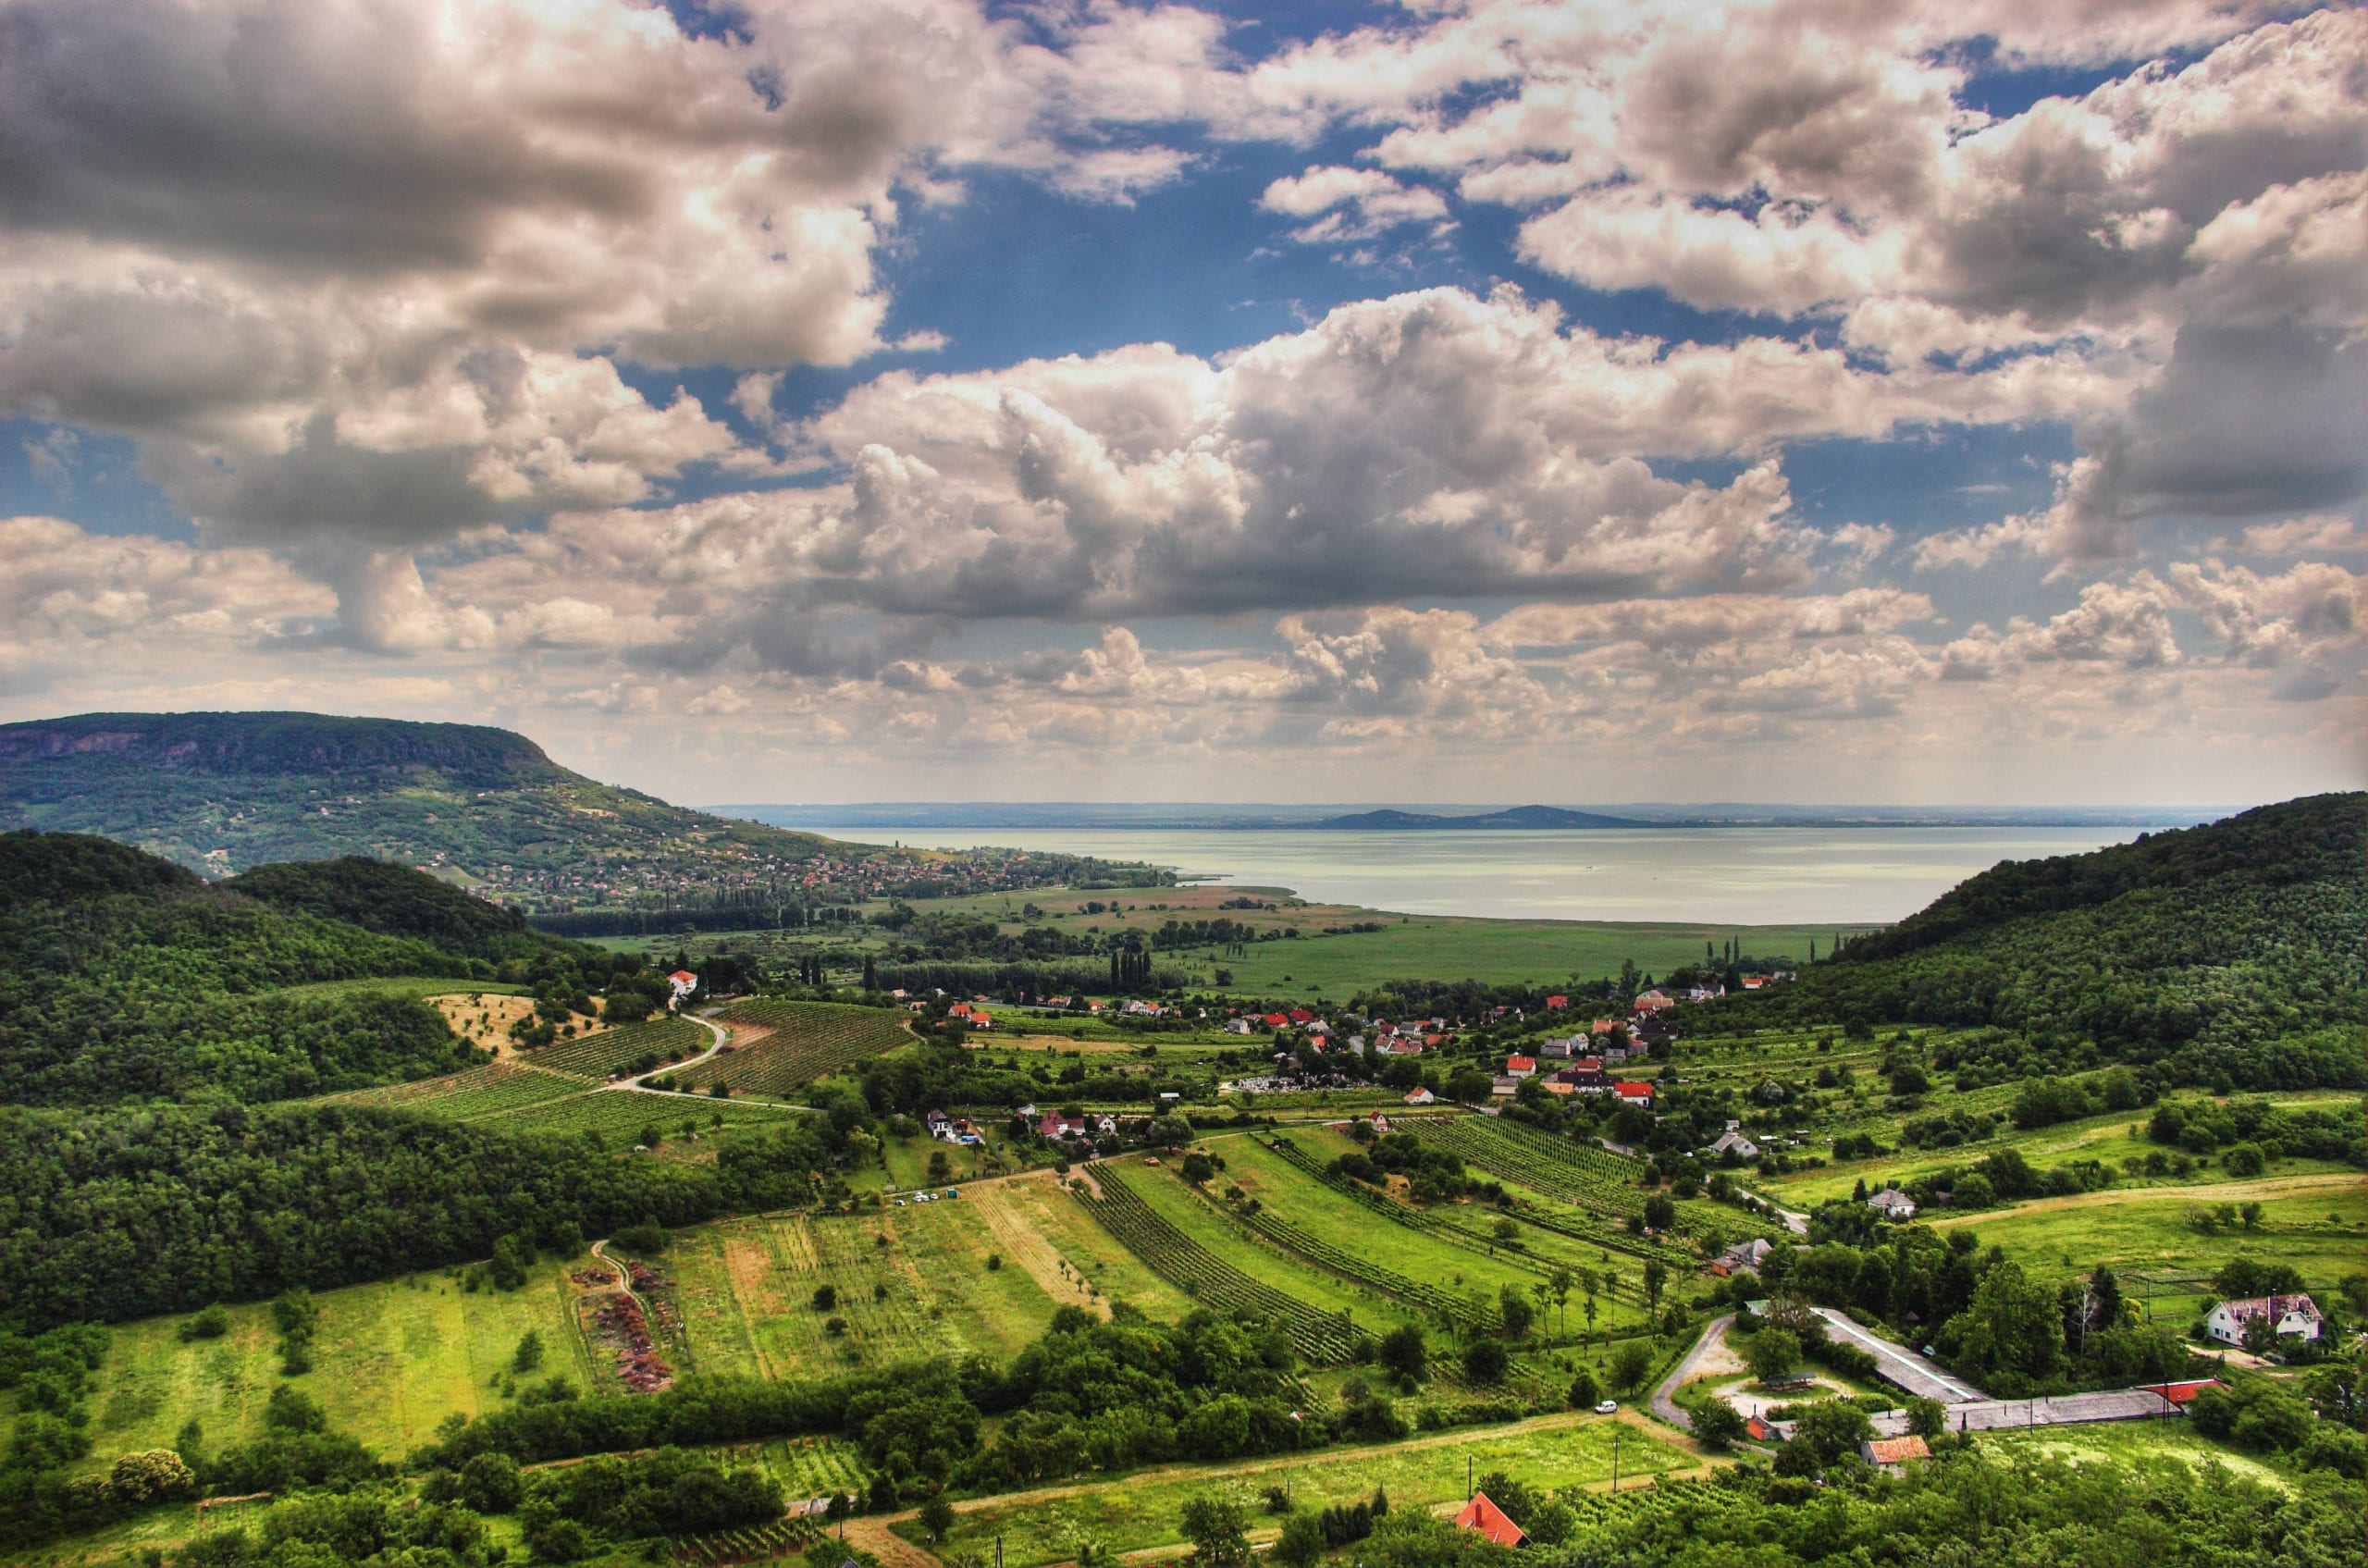 Hungary: Basic income related activity in Hungary